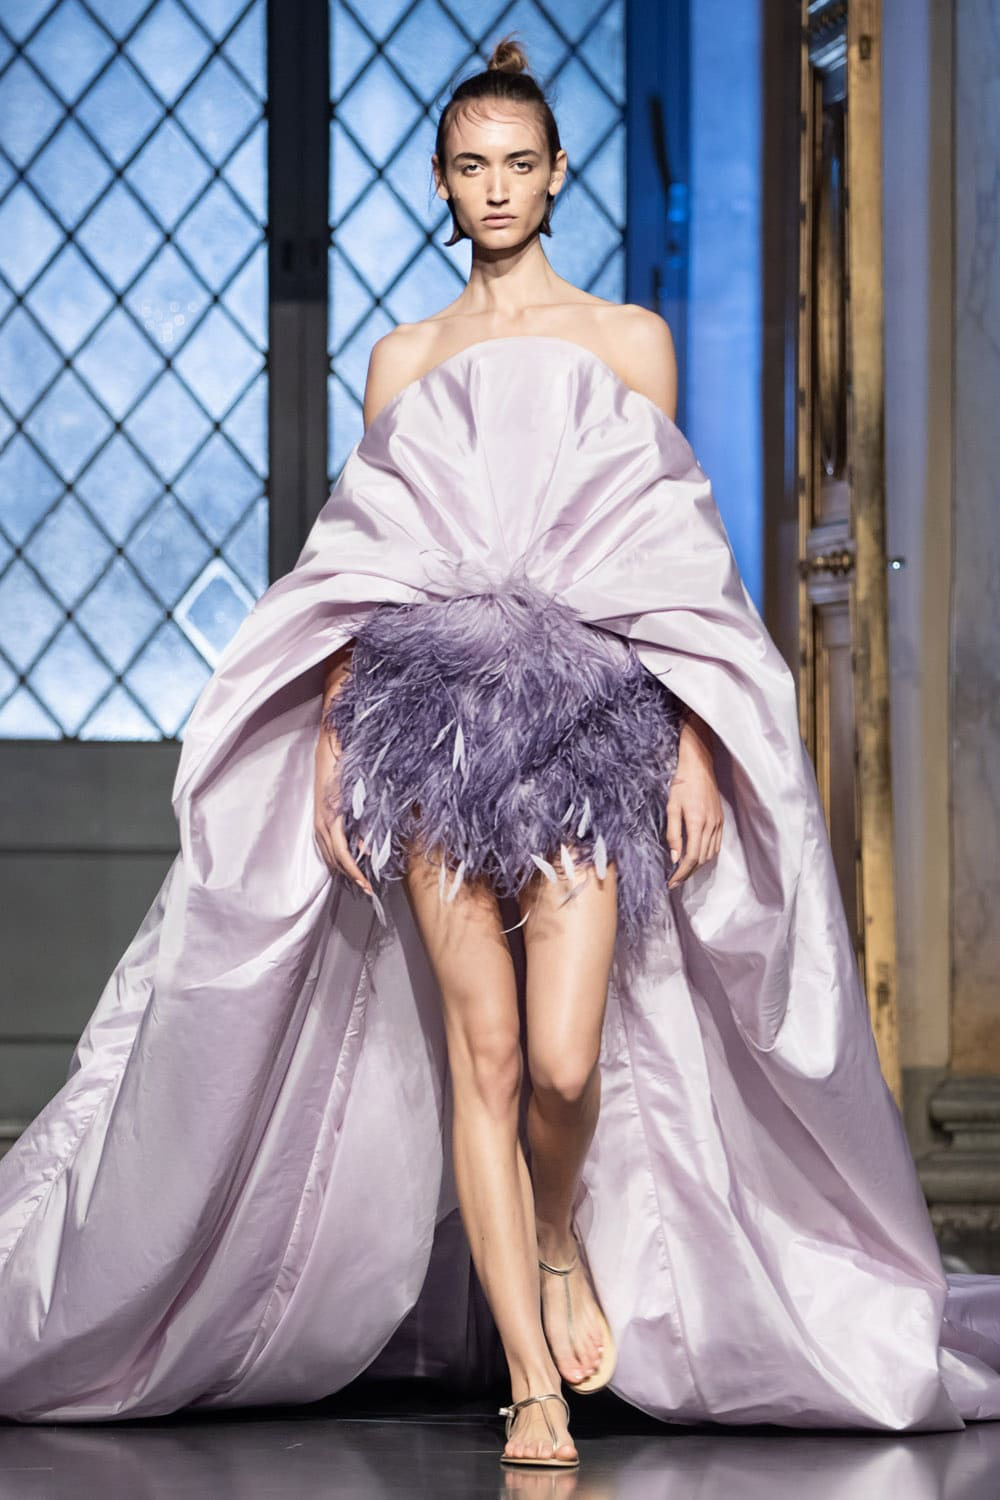 Antonio Grimaldi Haute Couture Spring Summer 2021. RUNWAY MAGAZINE ® Collections. RUNWAY NOW / RUNWAY NEW